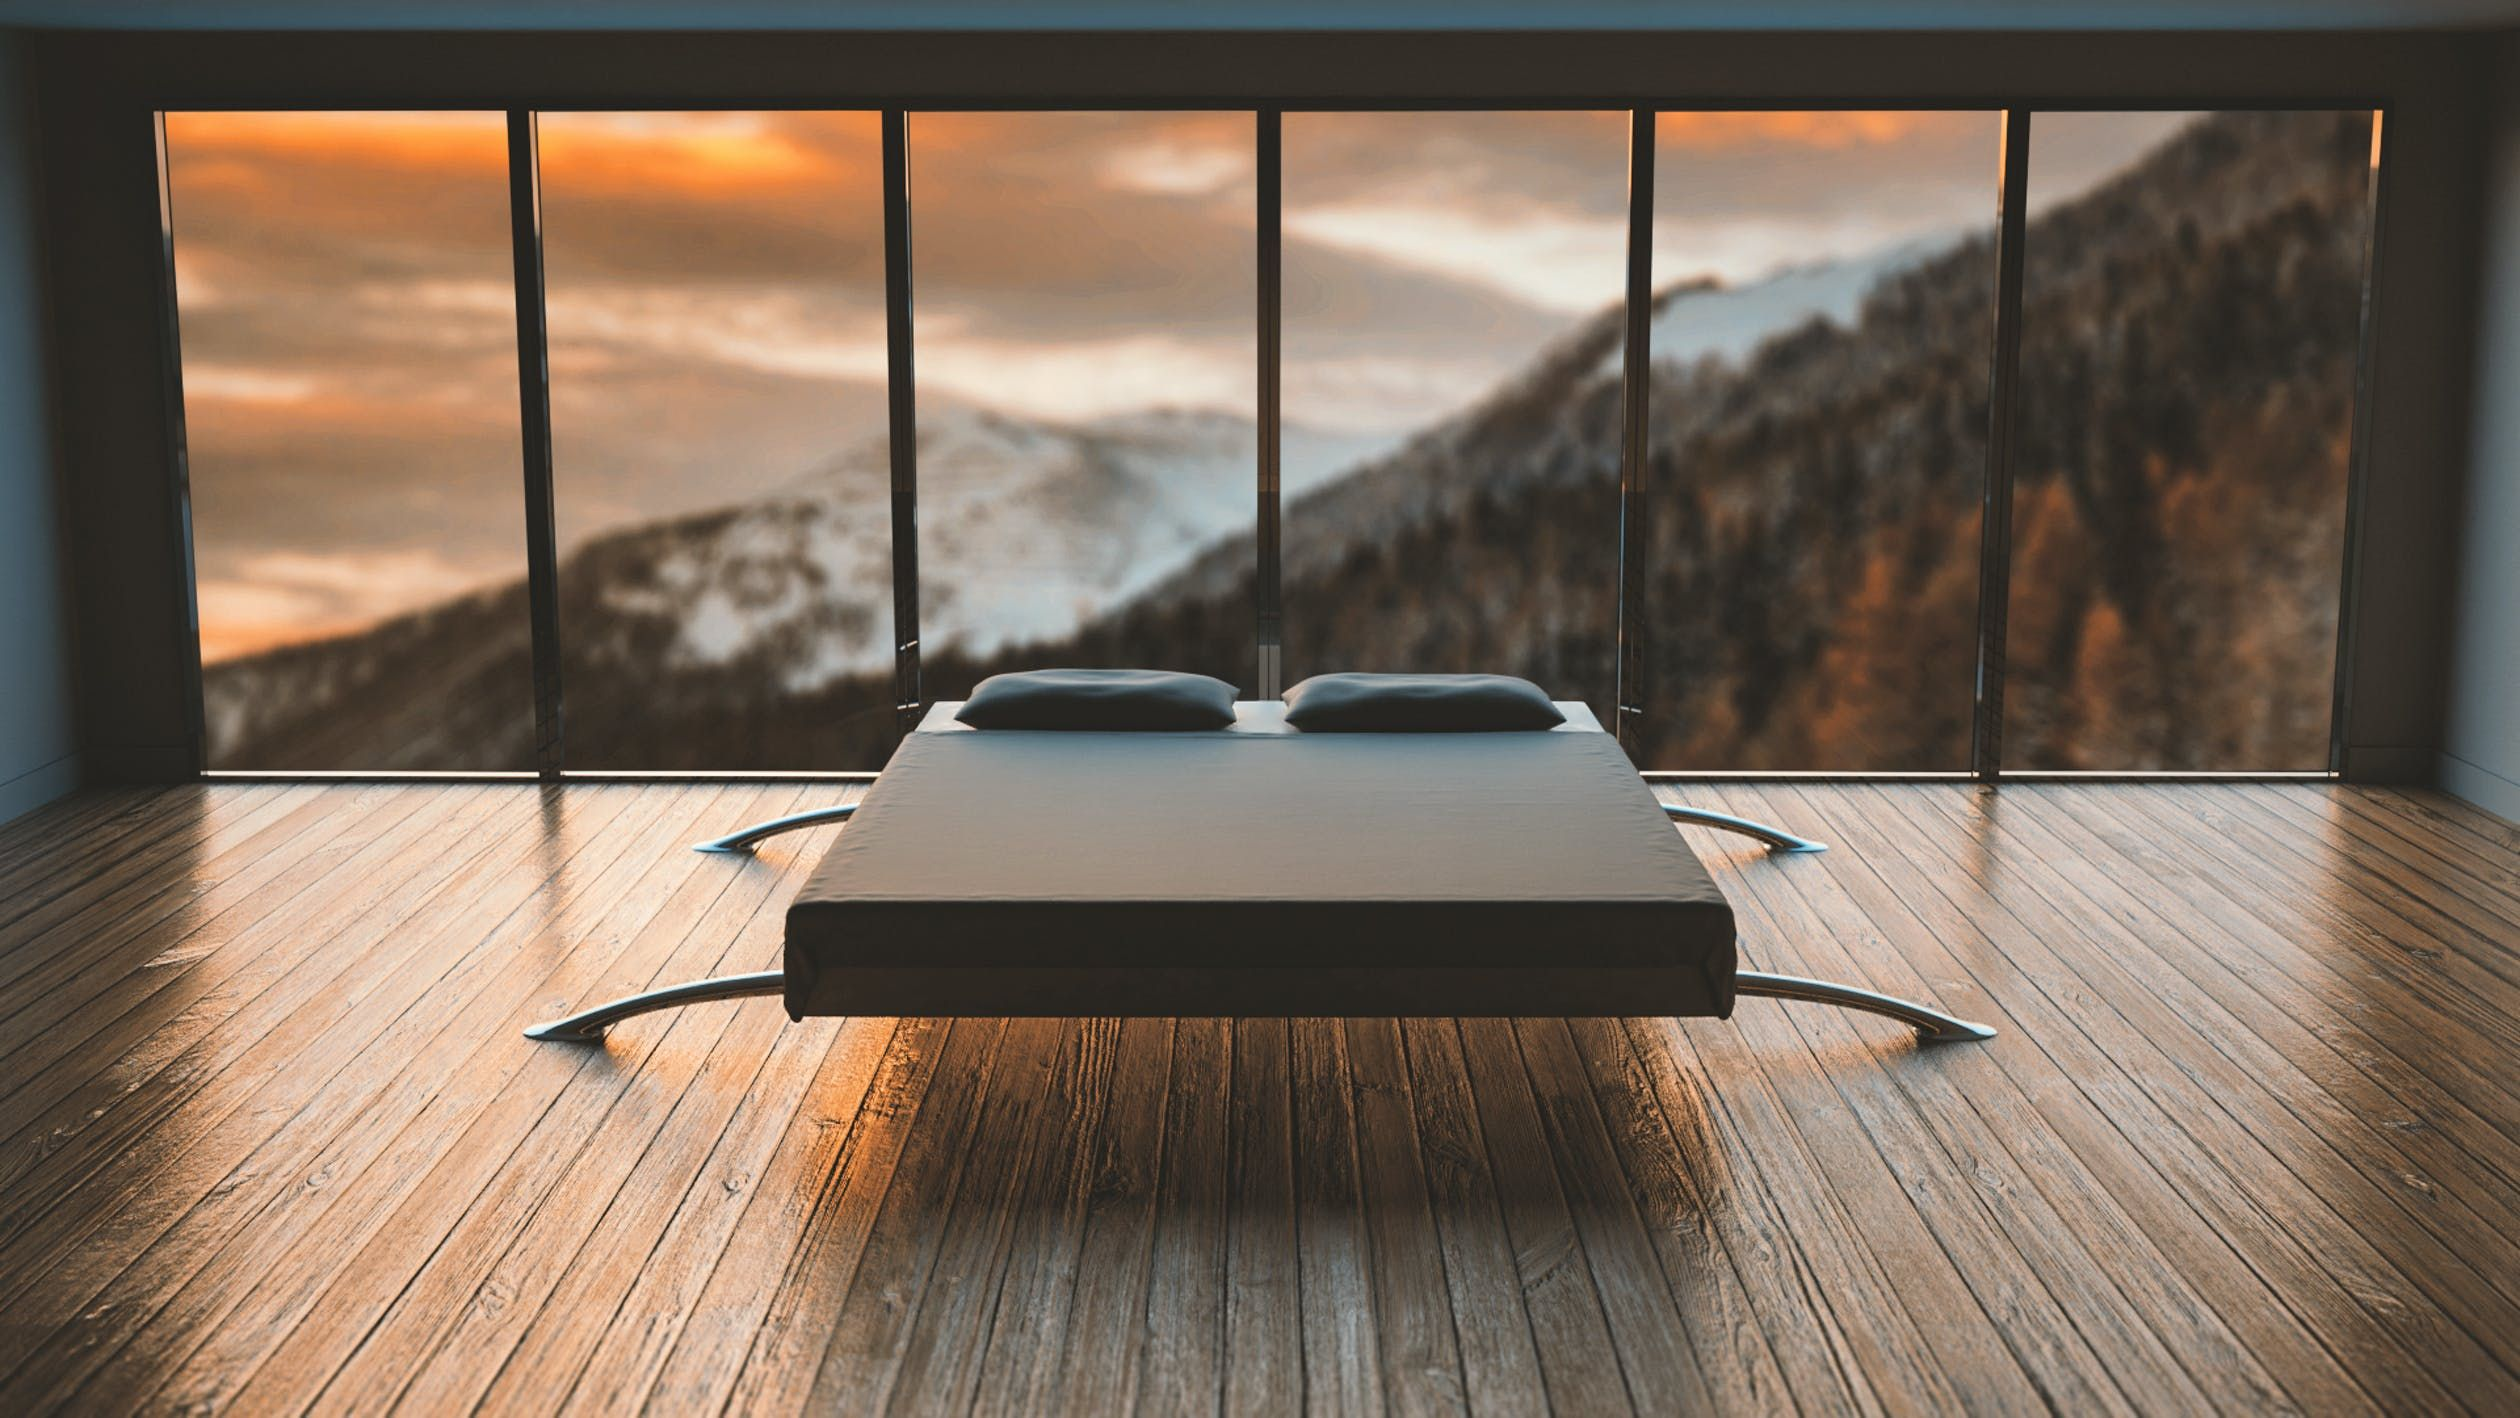 A black mattress facing a mountain sunset view